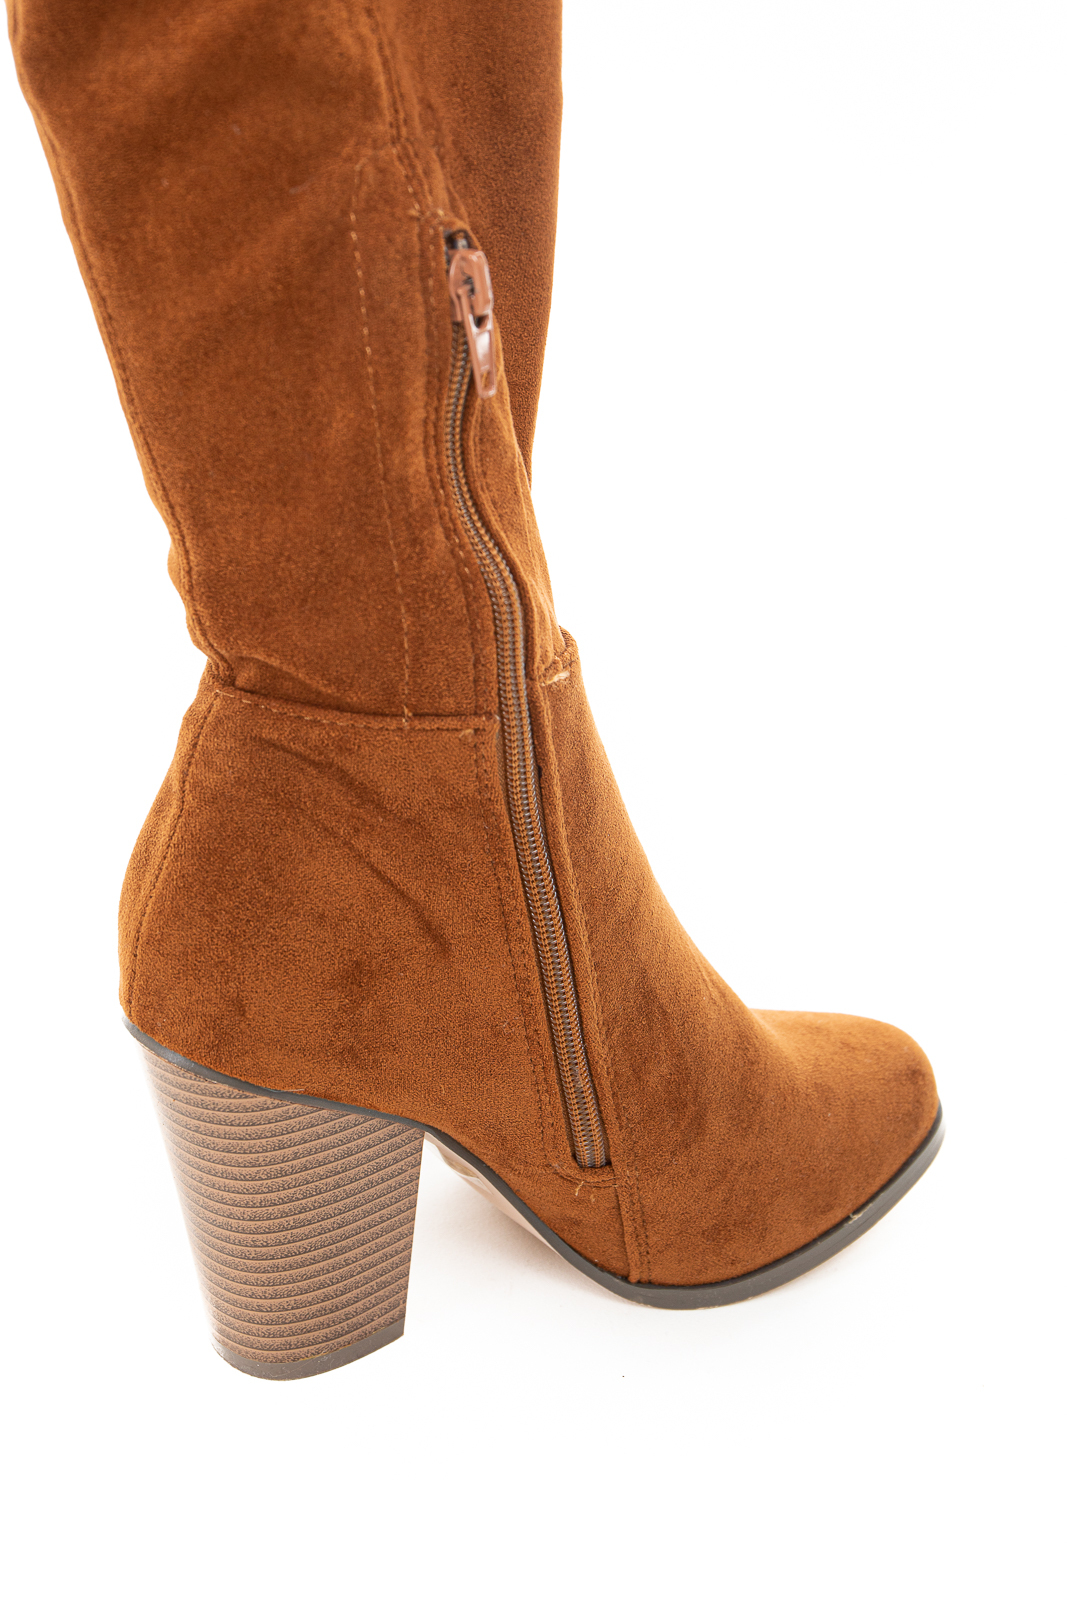 Caramel Knee High Boots with Side Zipper and Chunky Heel